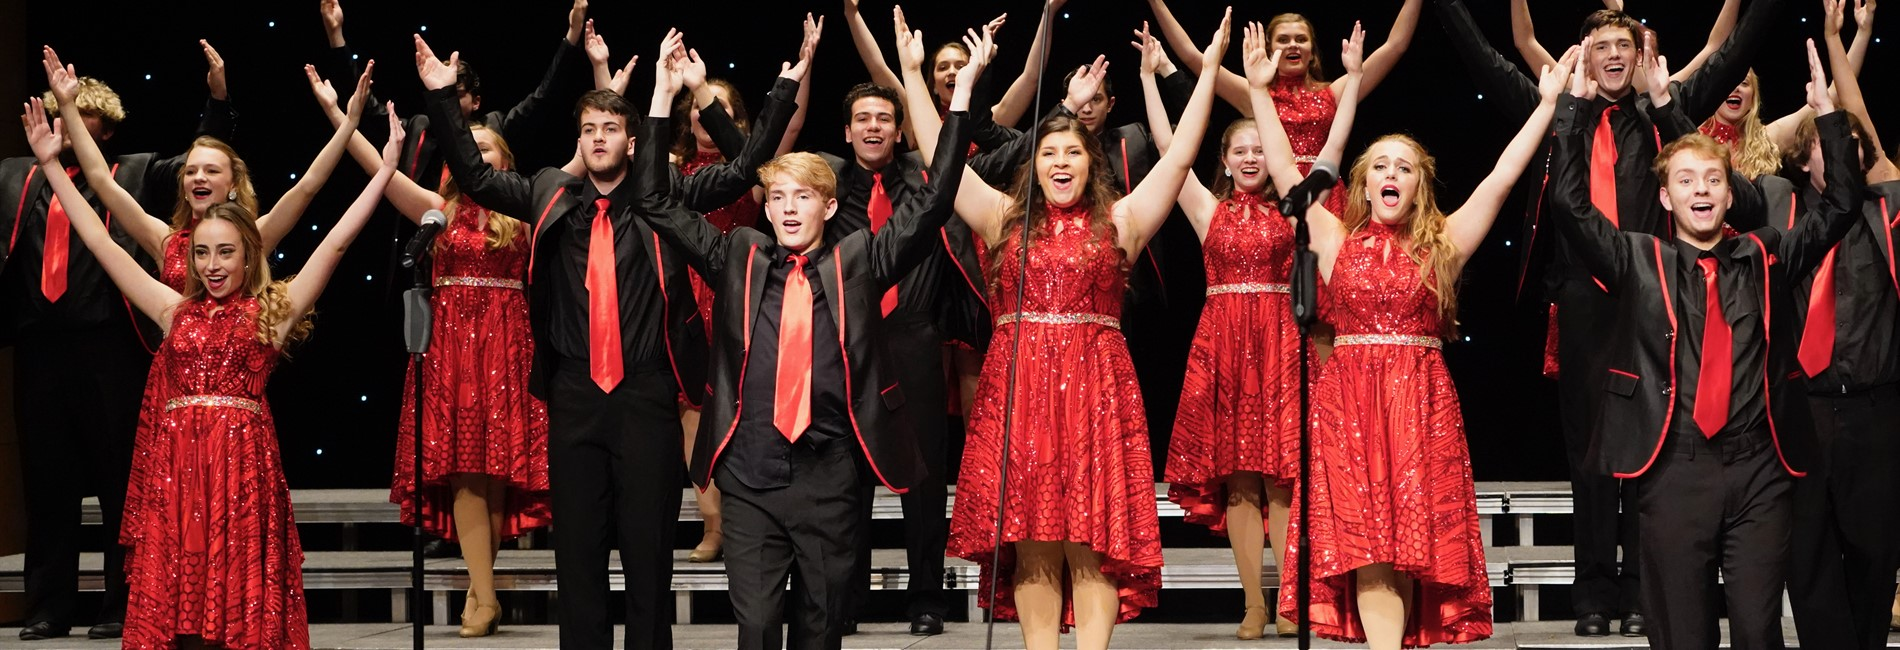 WHS Show Choir